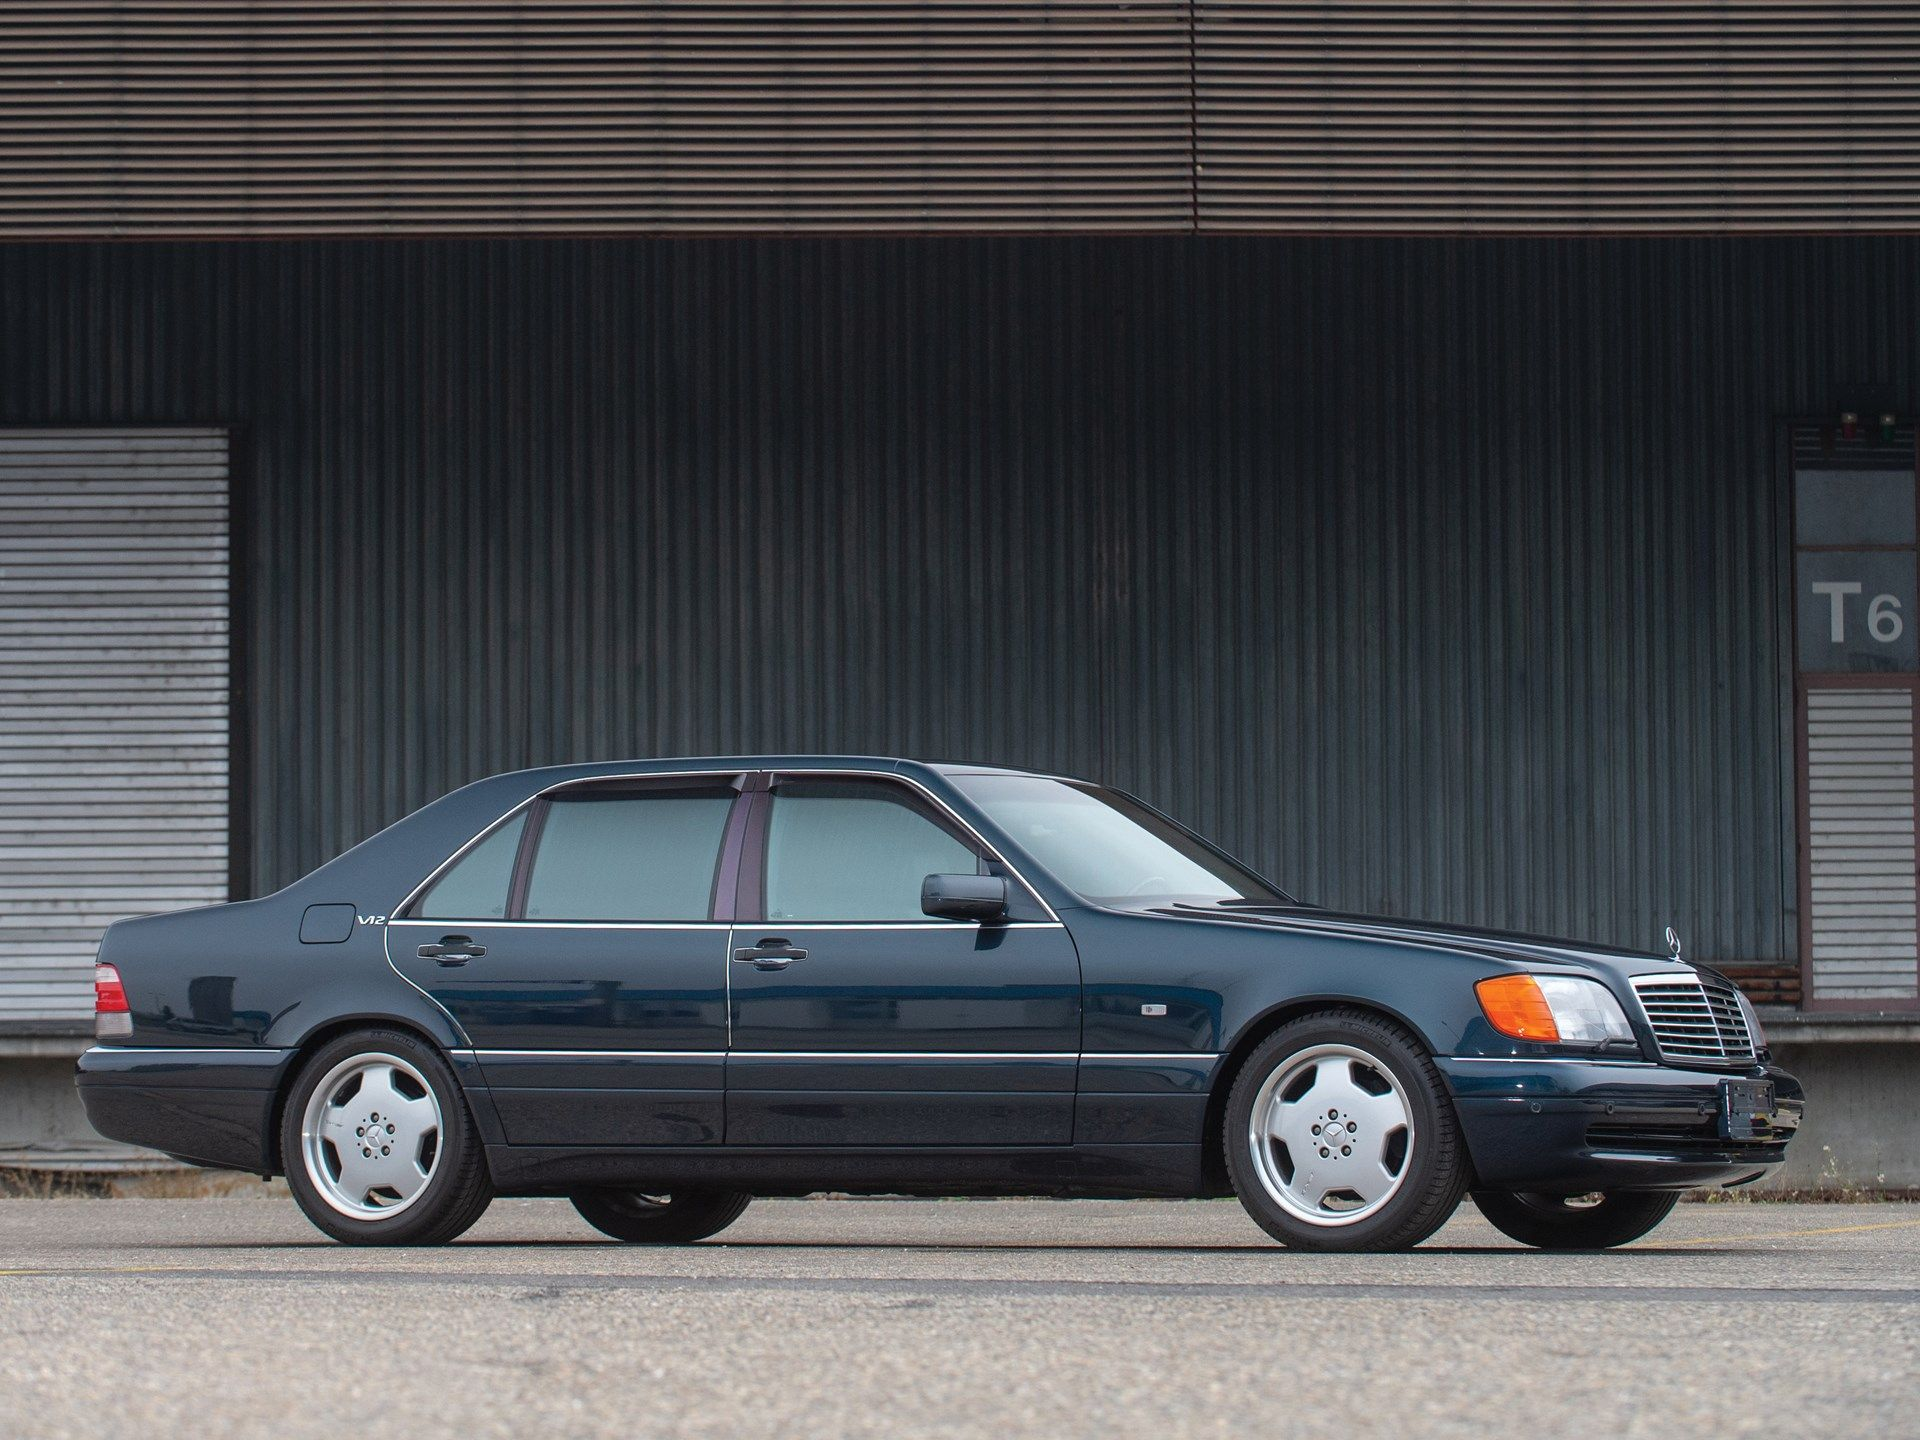 The Mercedes Benz S 600 Represented The Pinnacle Of Automotive Engineering During The 1990s Festooned With Industry Firsts From Benz S Mercedes Mercedes Benz